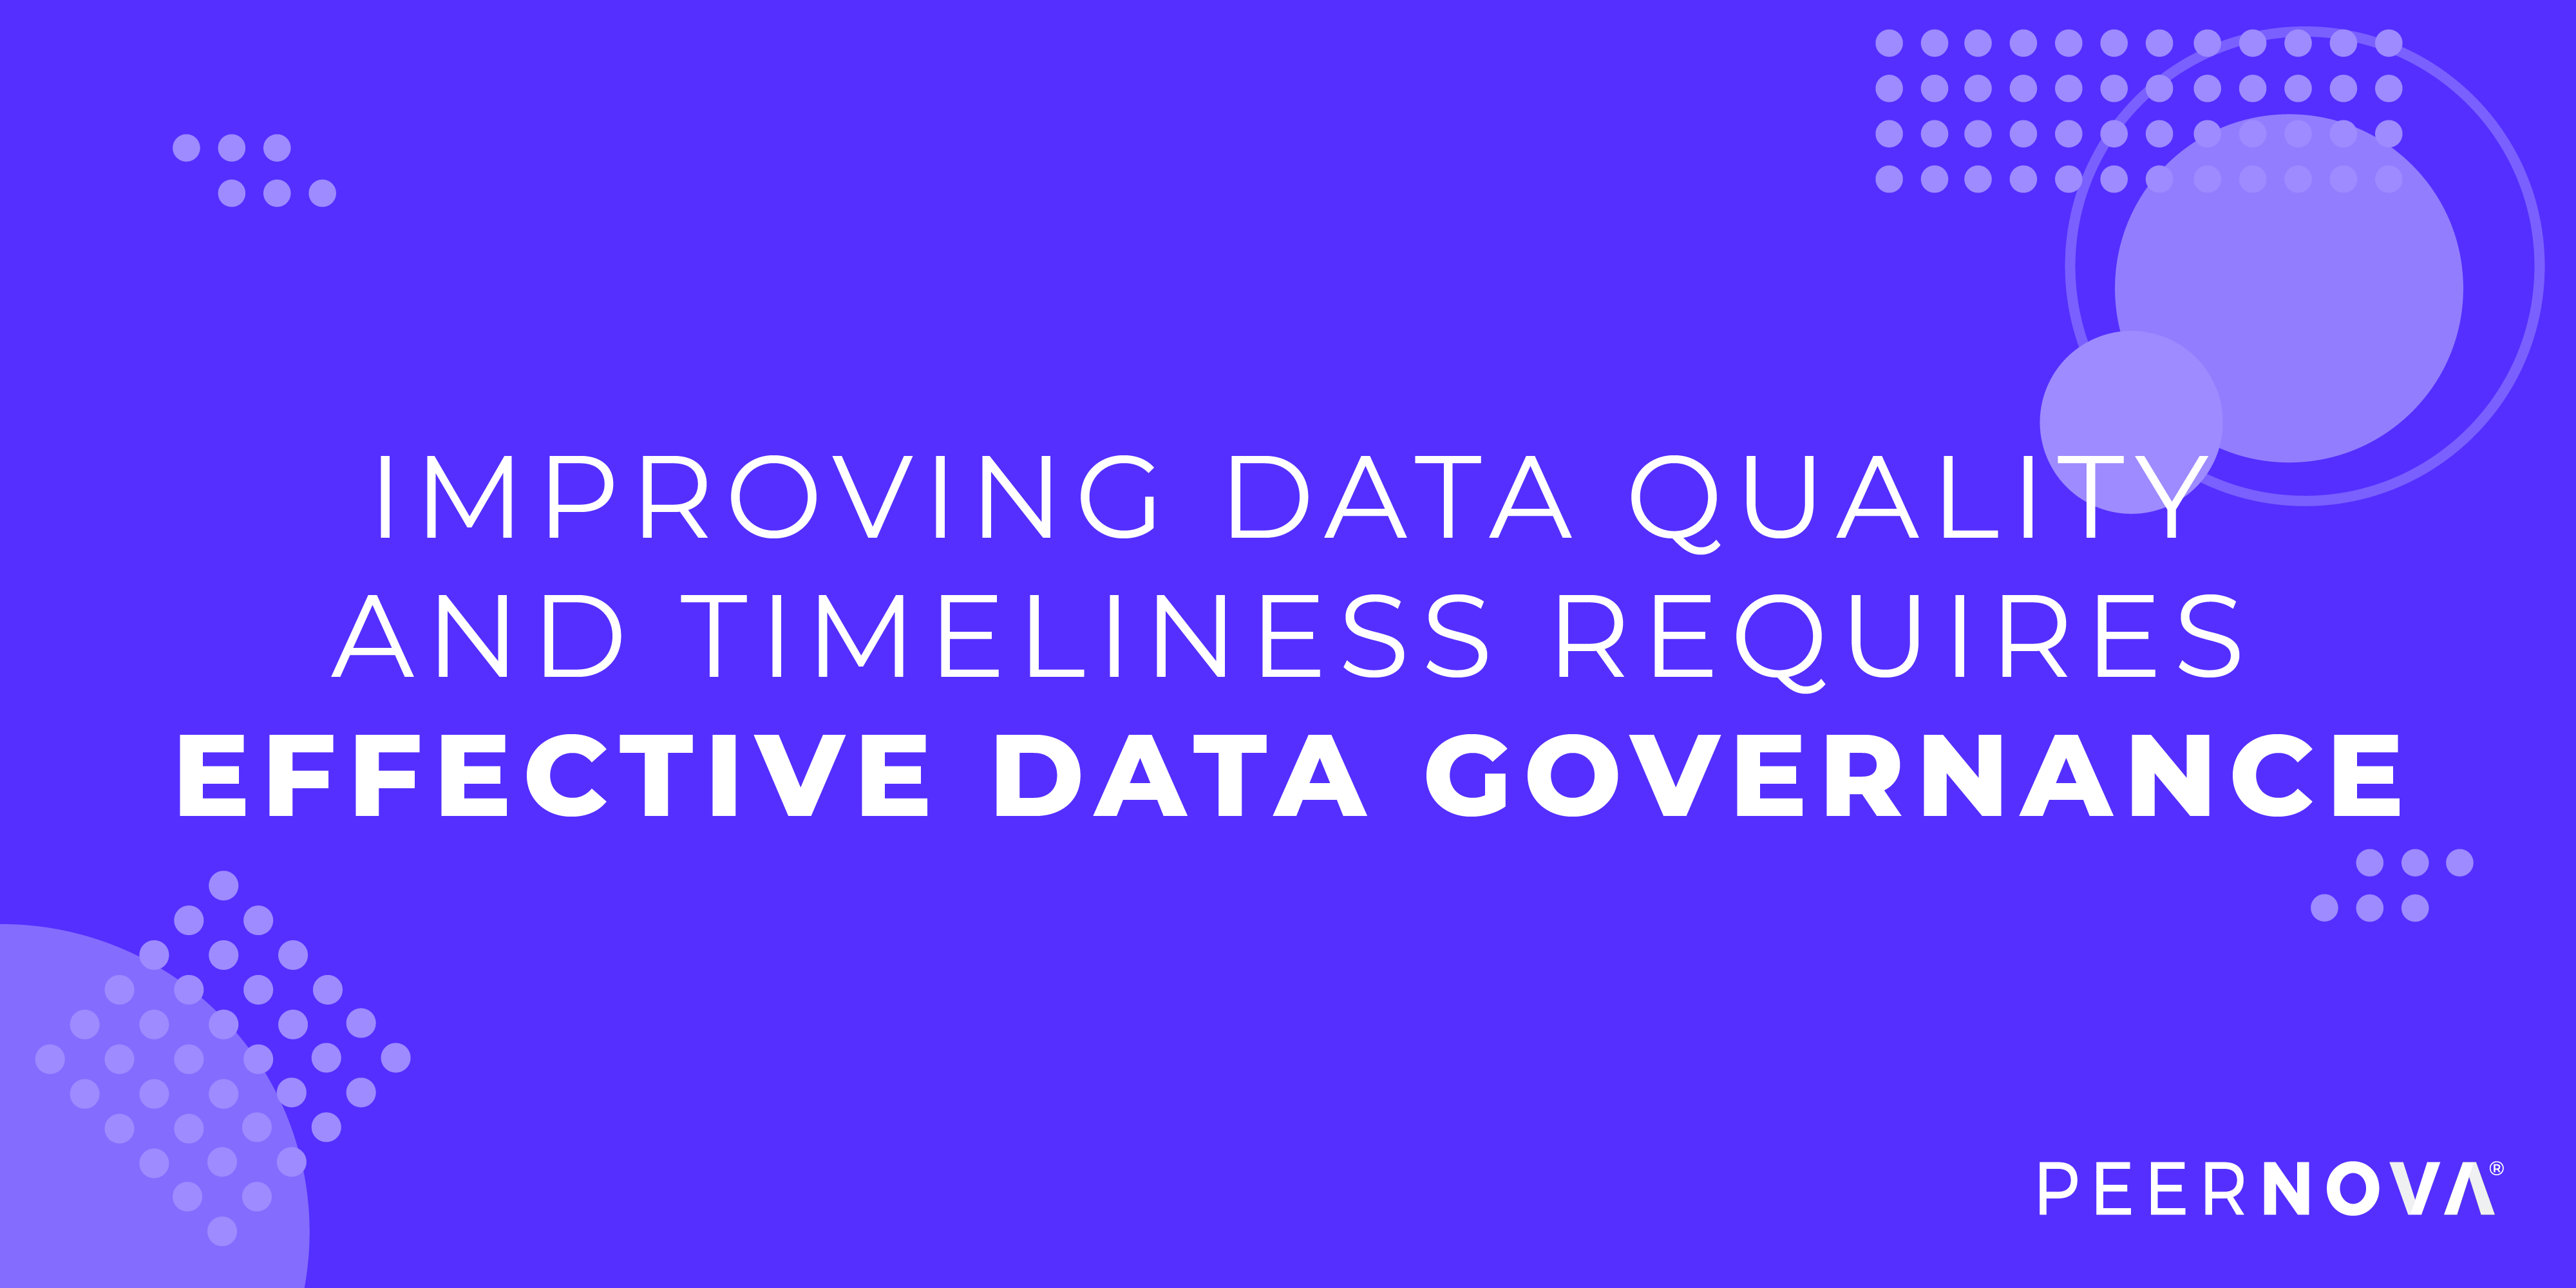 Improving Data Quality and Timeliness With Effective Data Governance